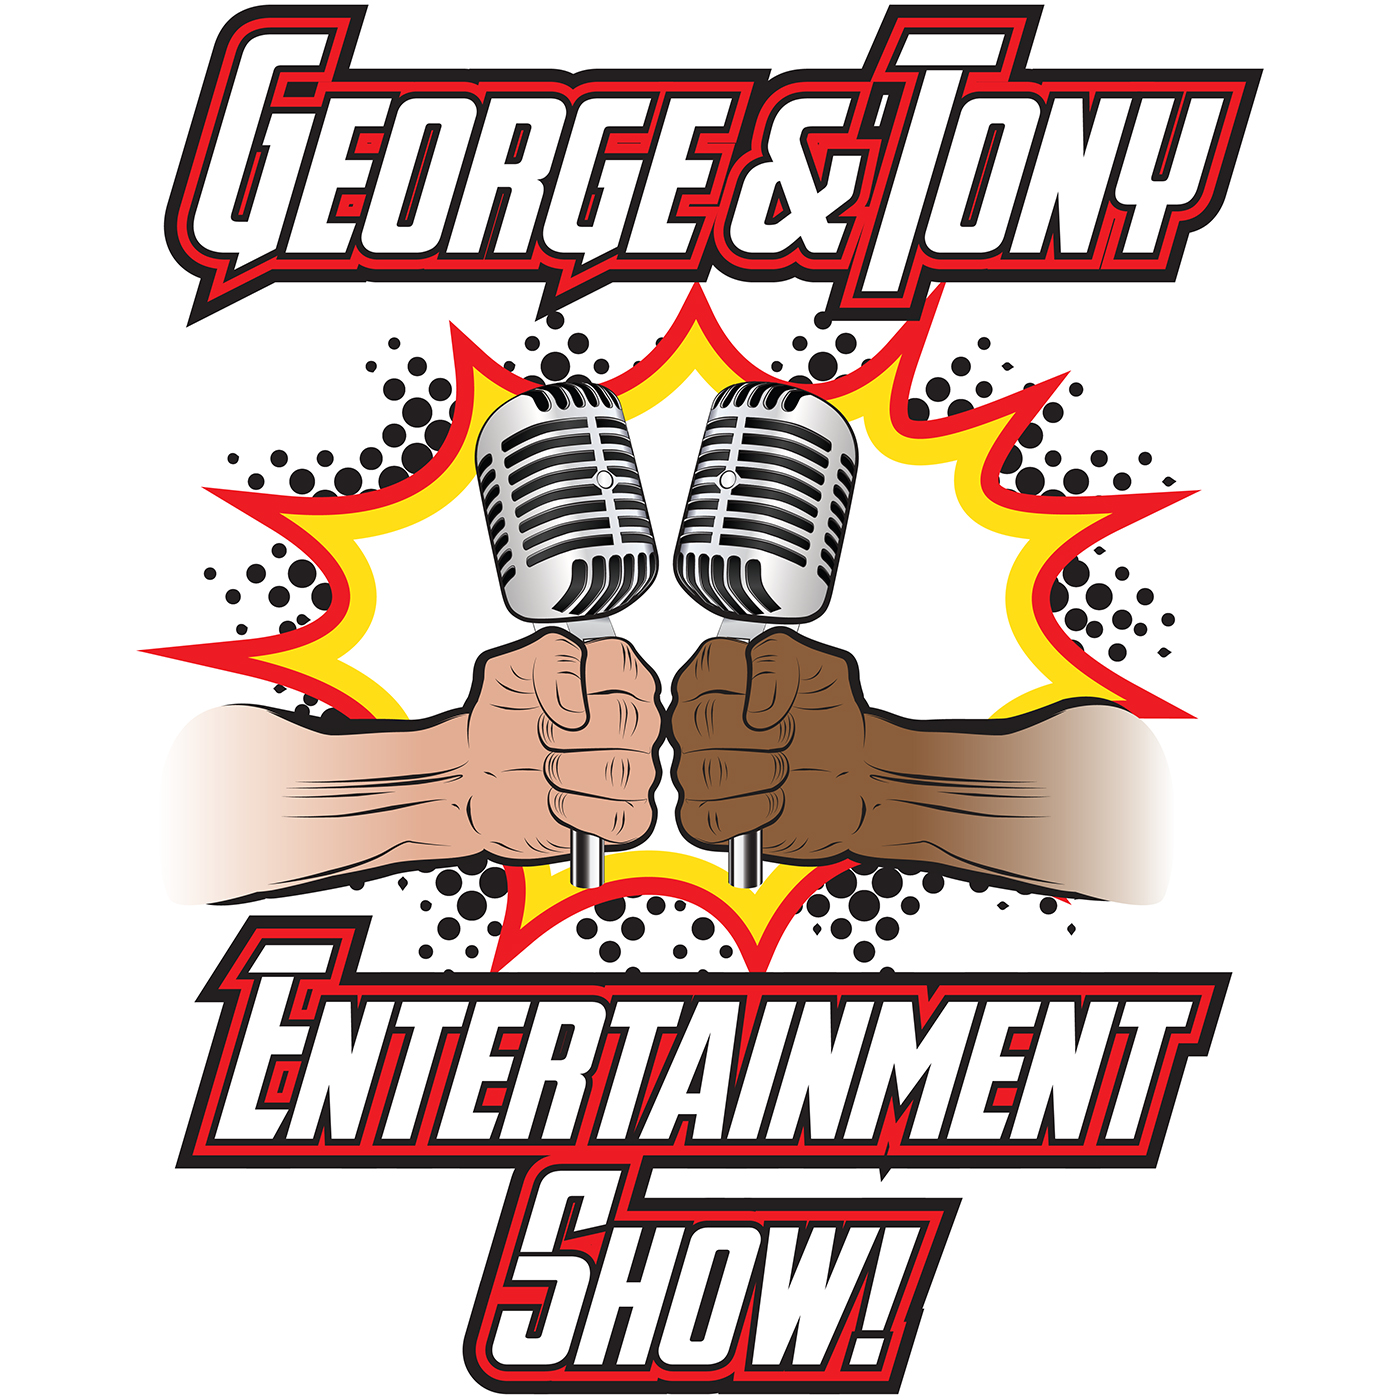 George and Tony Entertainment Show #118